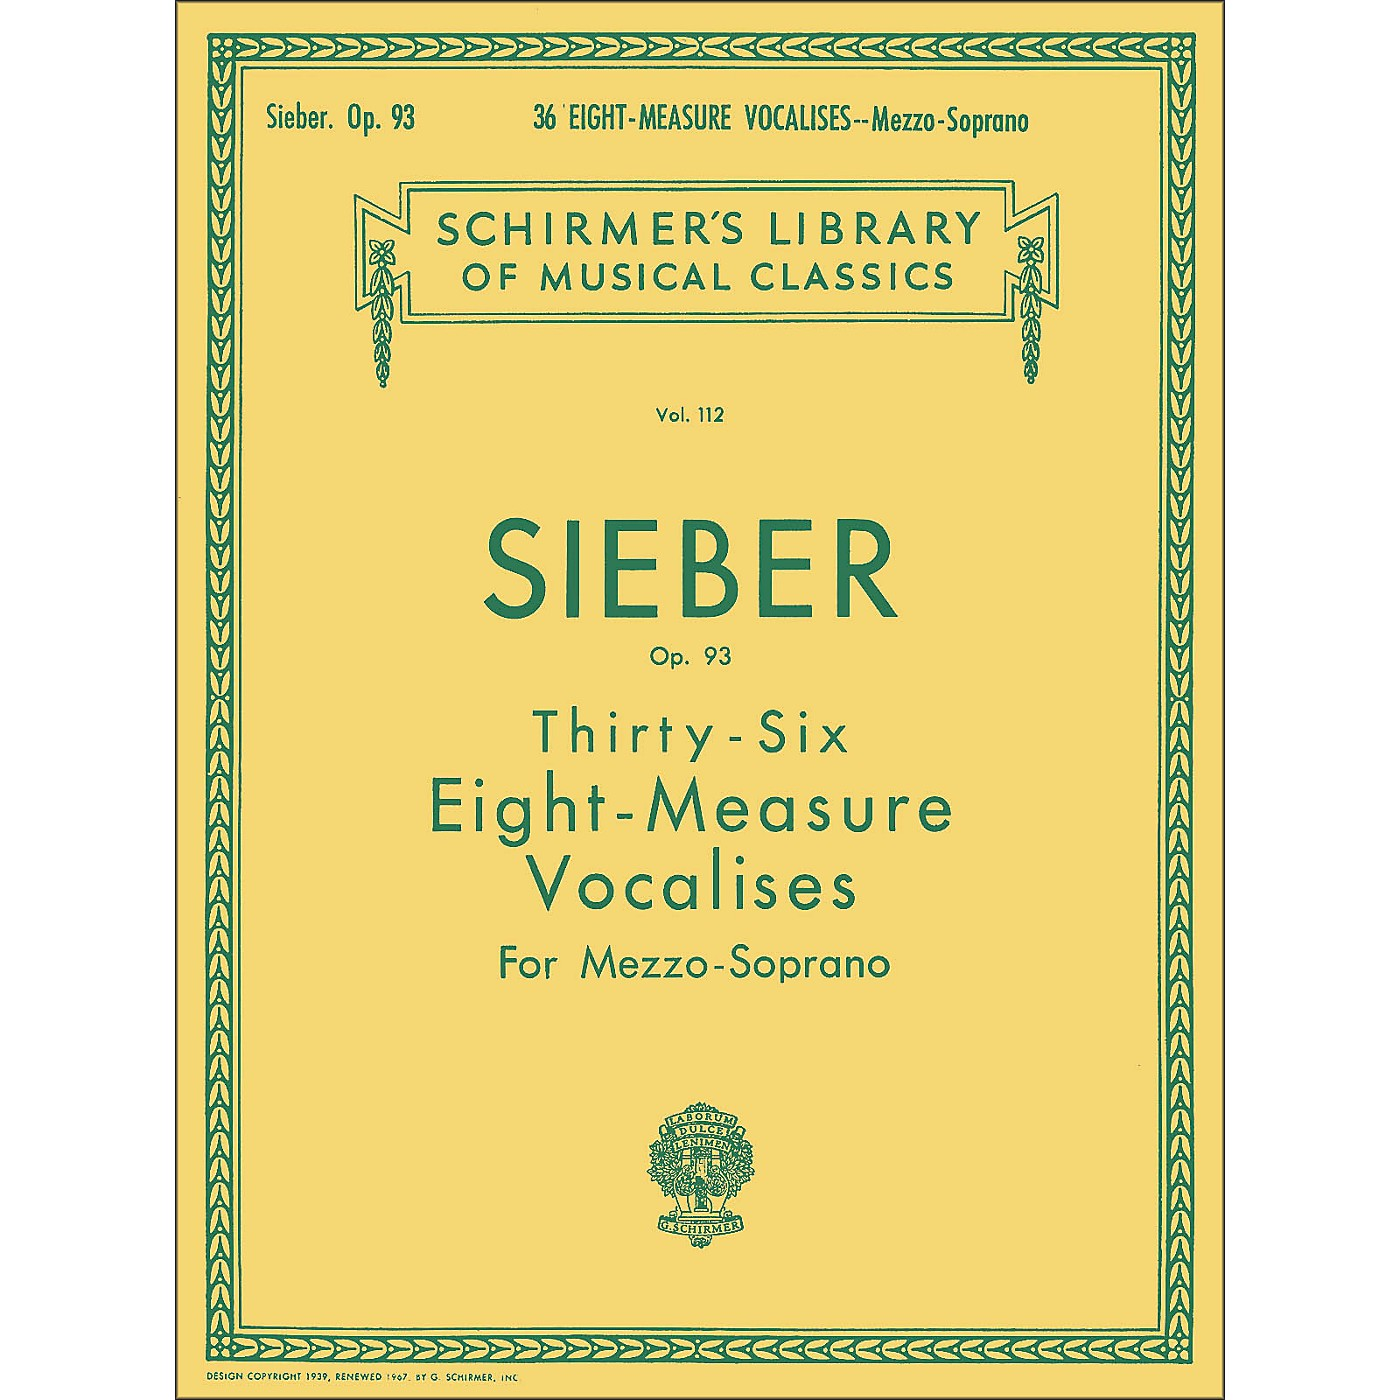 G. Schirmer 36 Eight Measure Vocalises, Op. 93 for Mezzo - Soprano by Sieber thumbnail